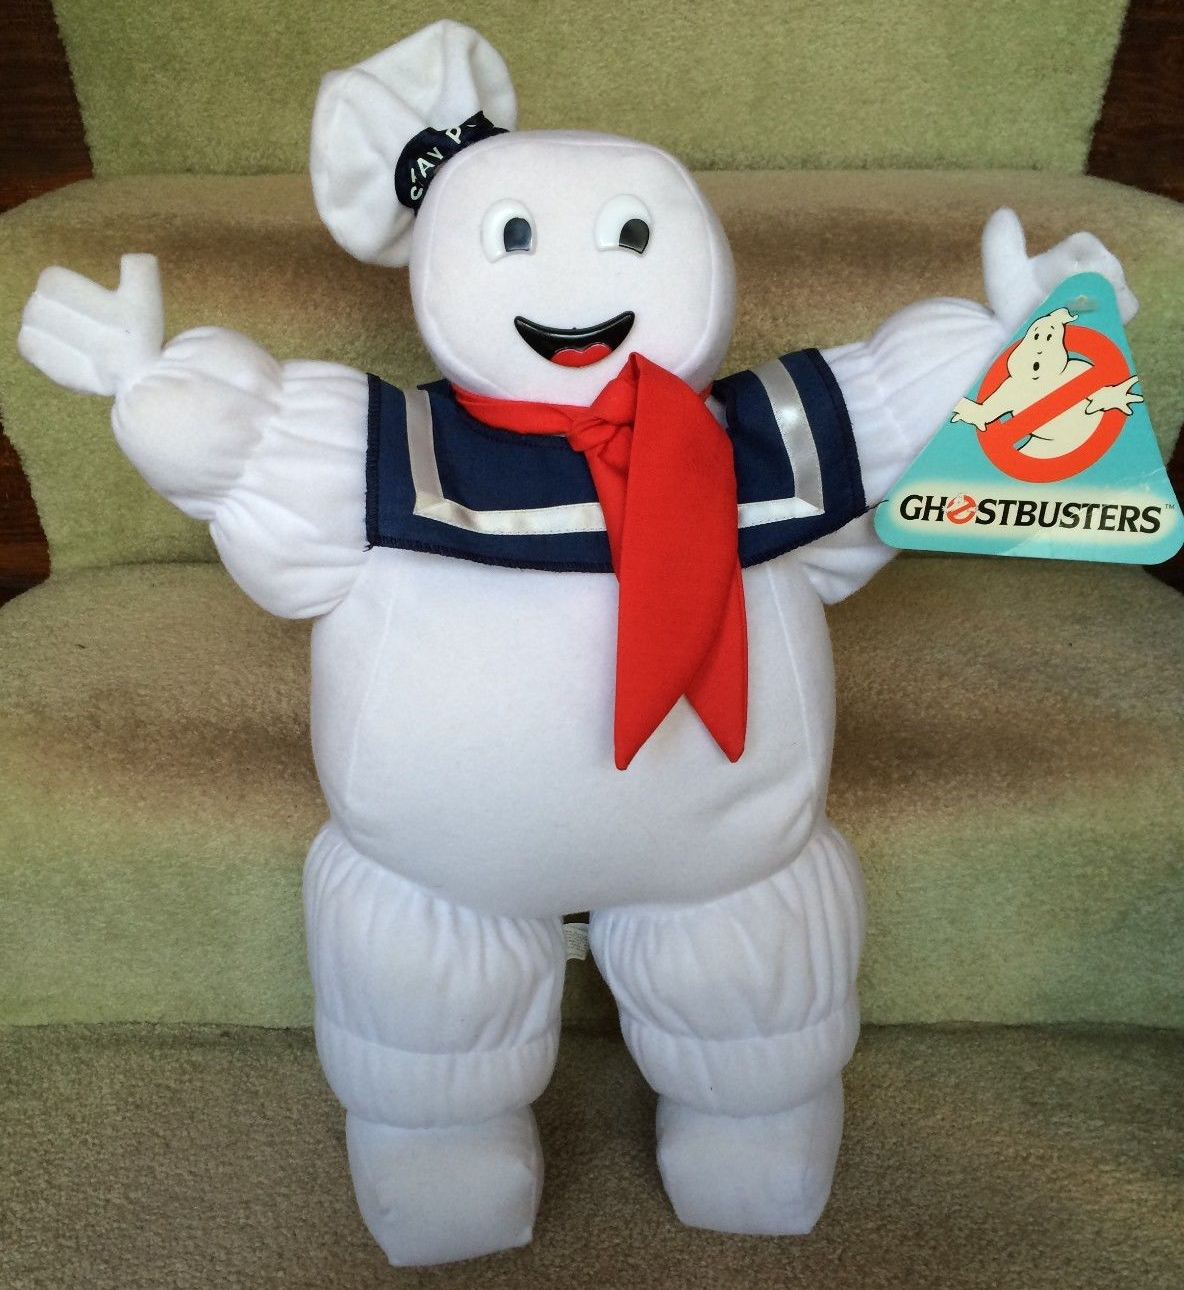 Stay Puft Man by Galoob